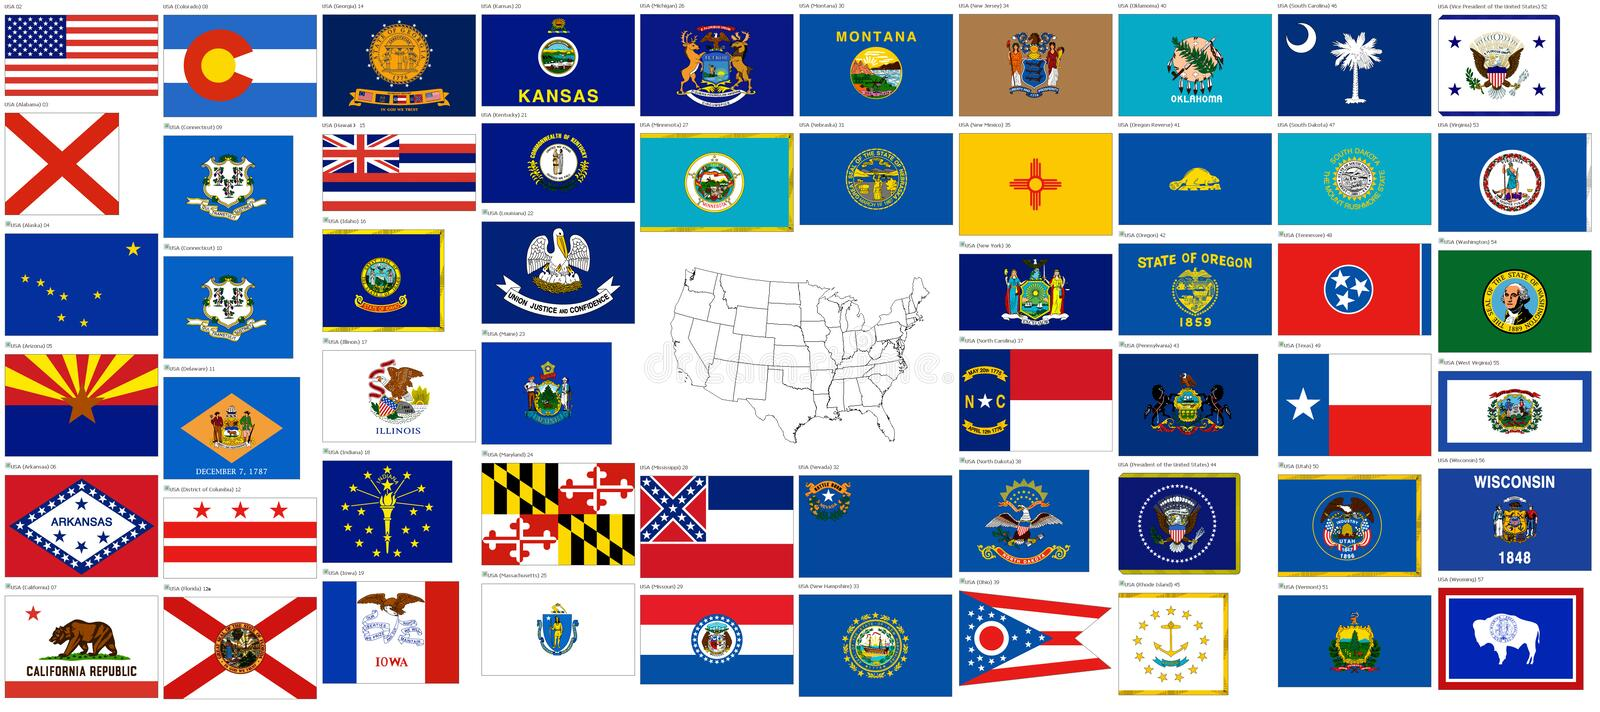 Flags of the states of USA. Over 50 flags of each of the states of the United States